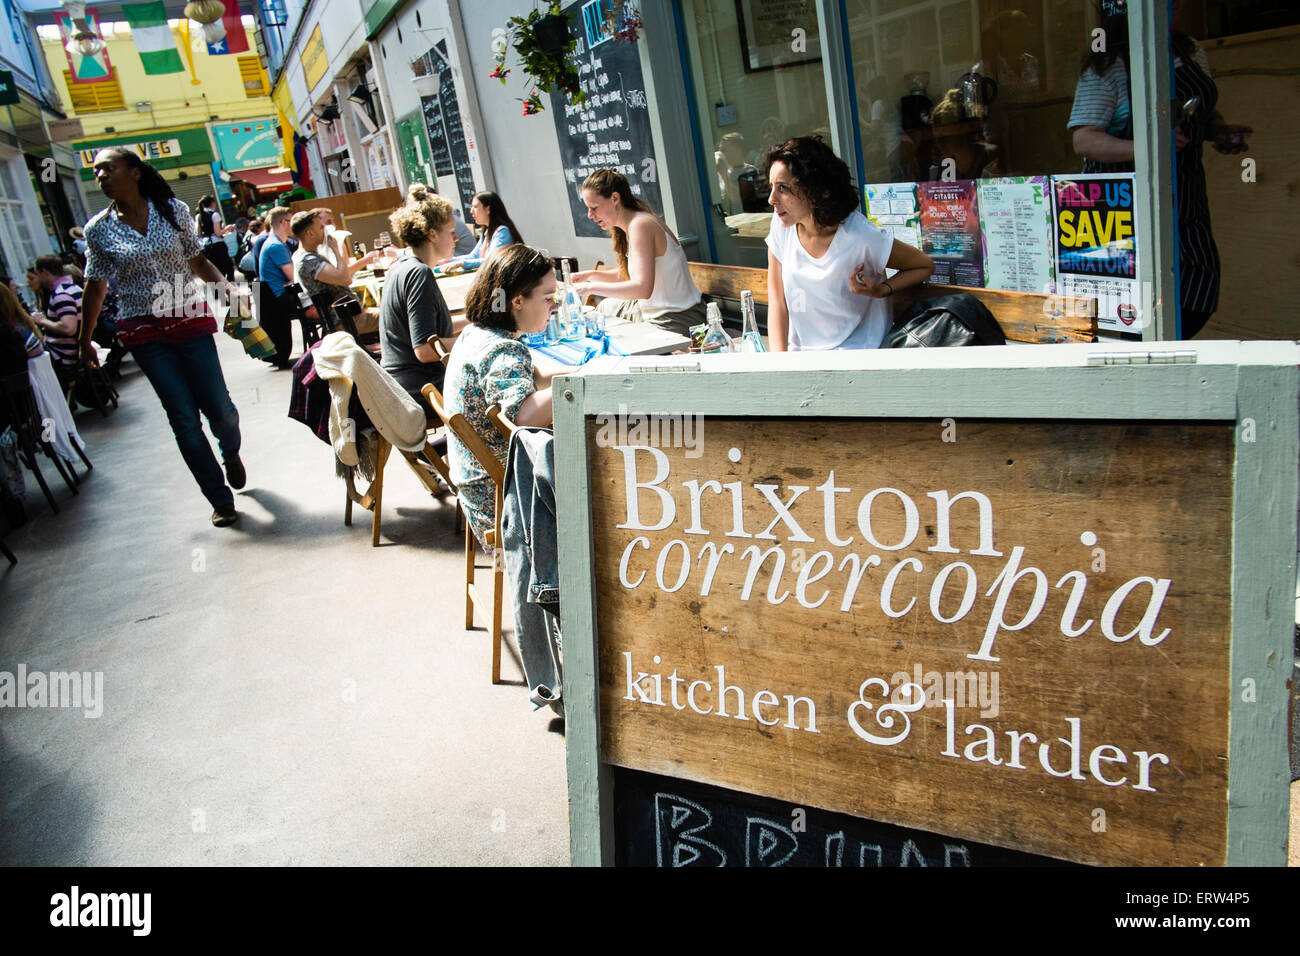 Brixton, London, United Kingdom - Stock Image